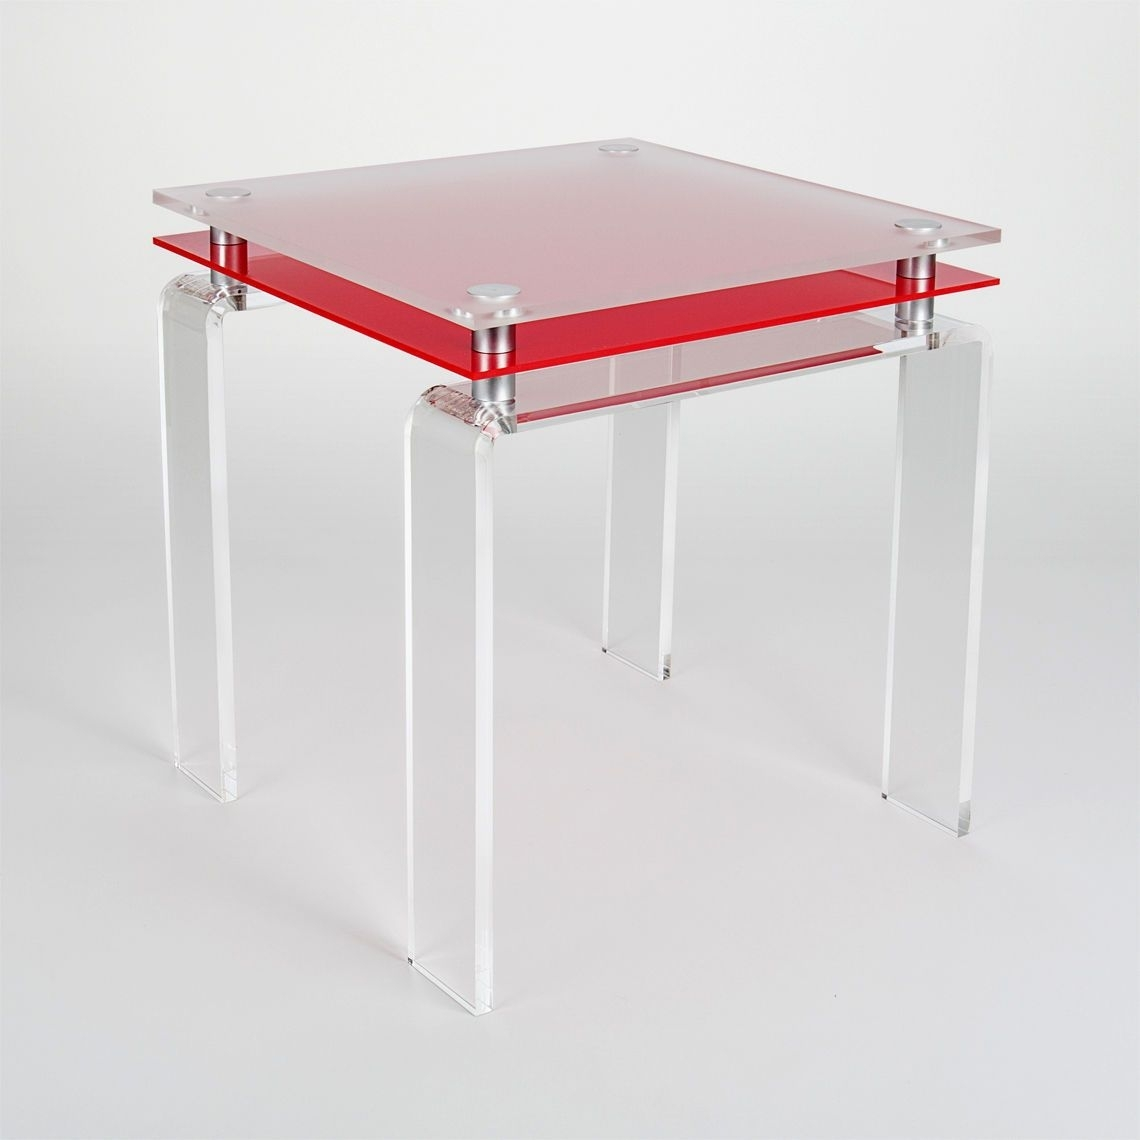 Modern Acrylic Coffee Table for Modern Acrylic Coffee Tables (Image 22 of 30)